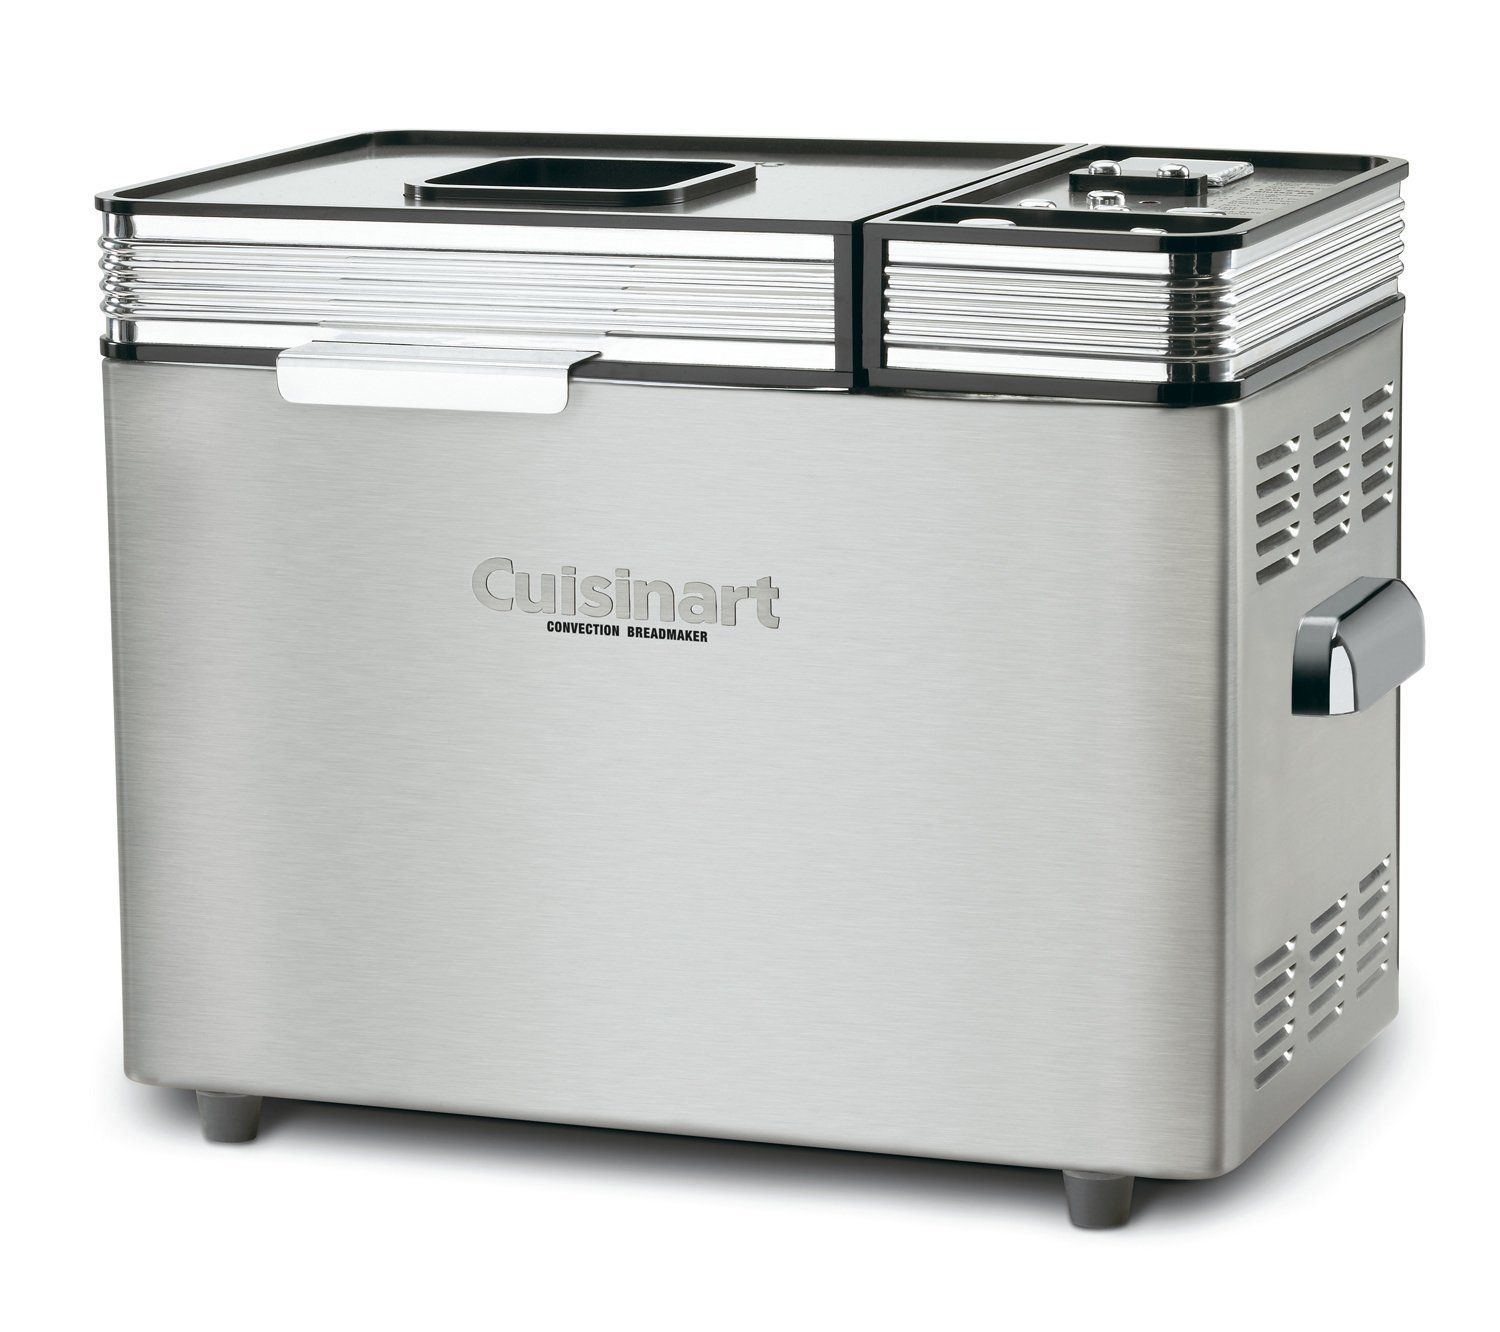 Cuisinart Cbk 200 2 Lb Convection Bread Maker This Is An Amazon Affiliate Link You Can Get Additi Bread Maker Gluten Free Bread Machine Best Bread Machine